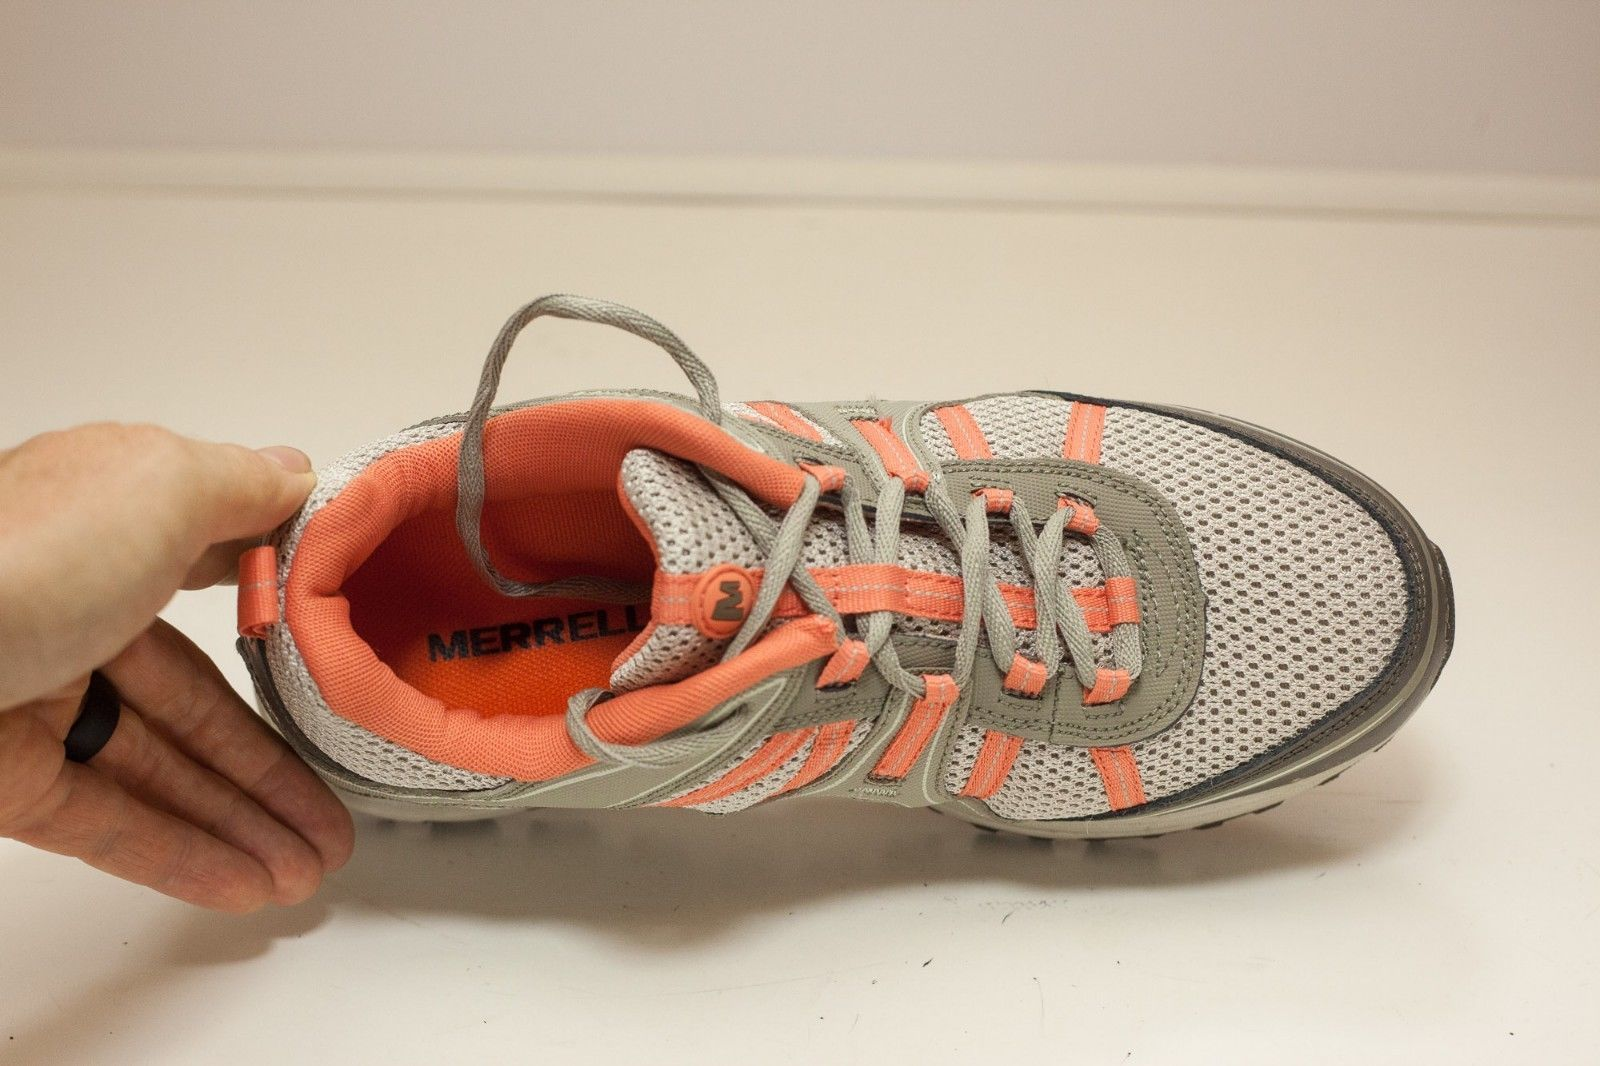 Merrell US 9.5 Gray Training Shoes Women's